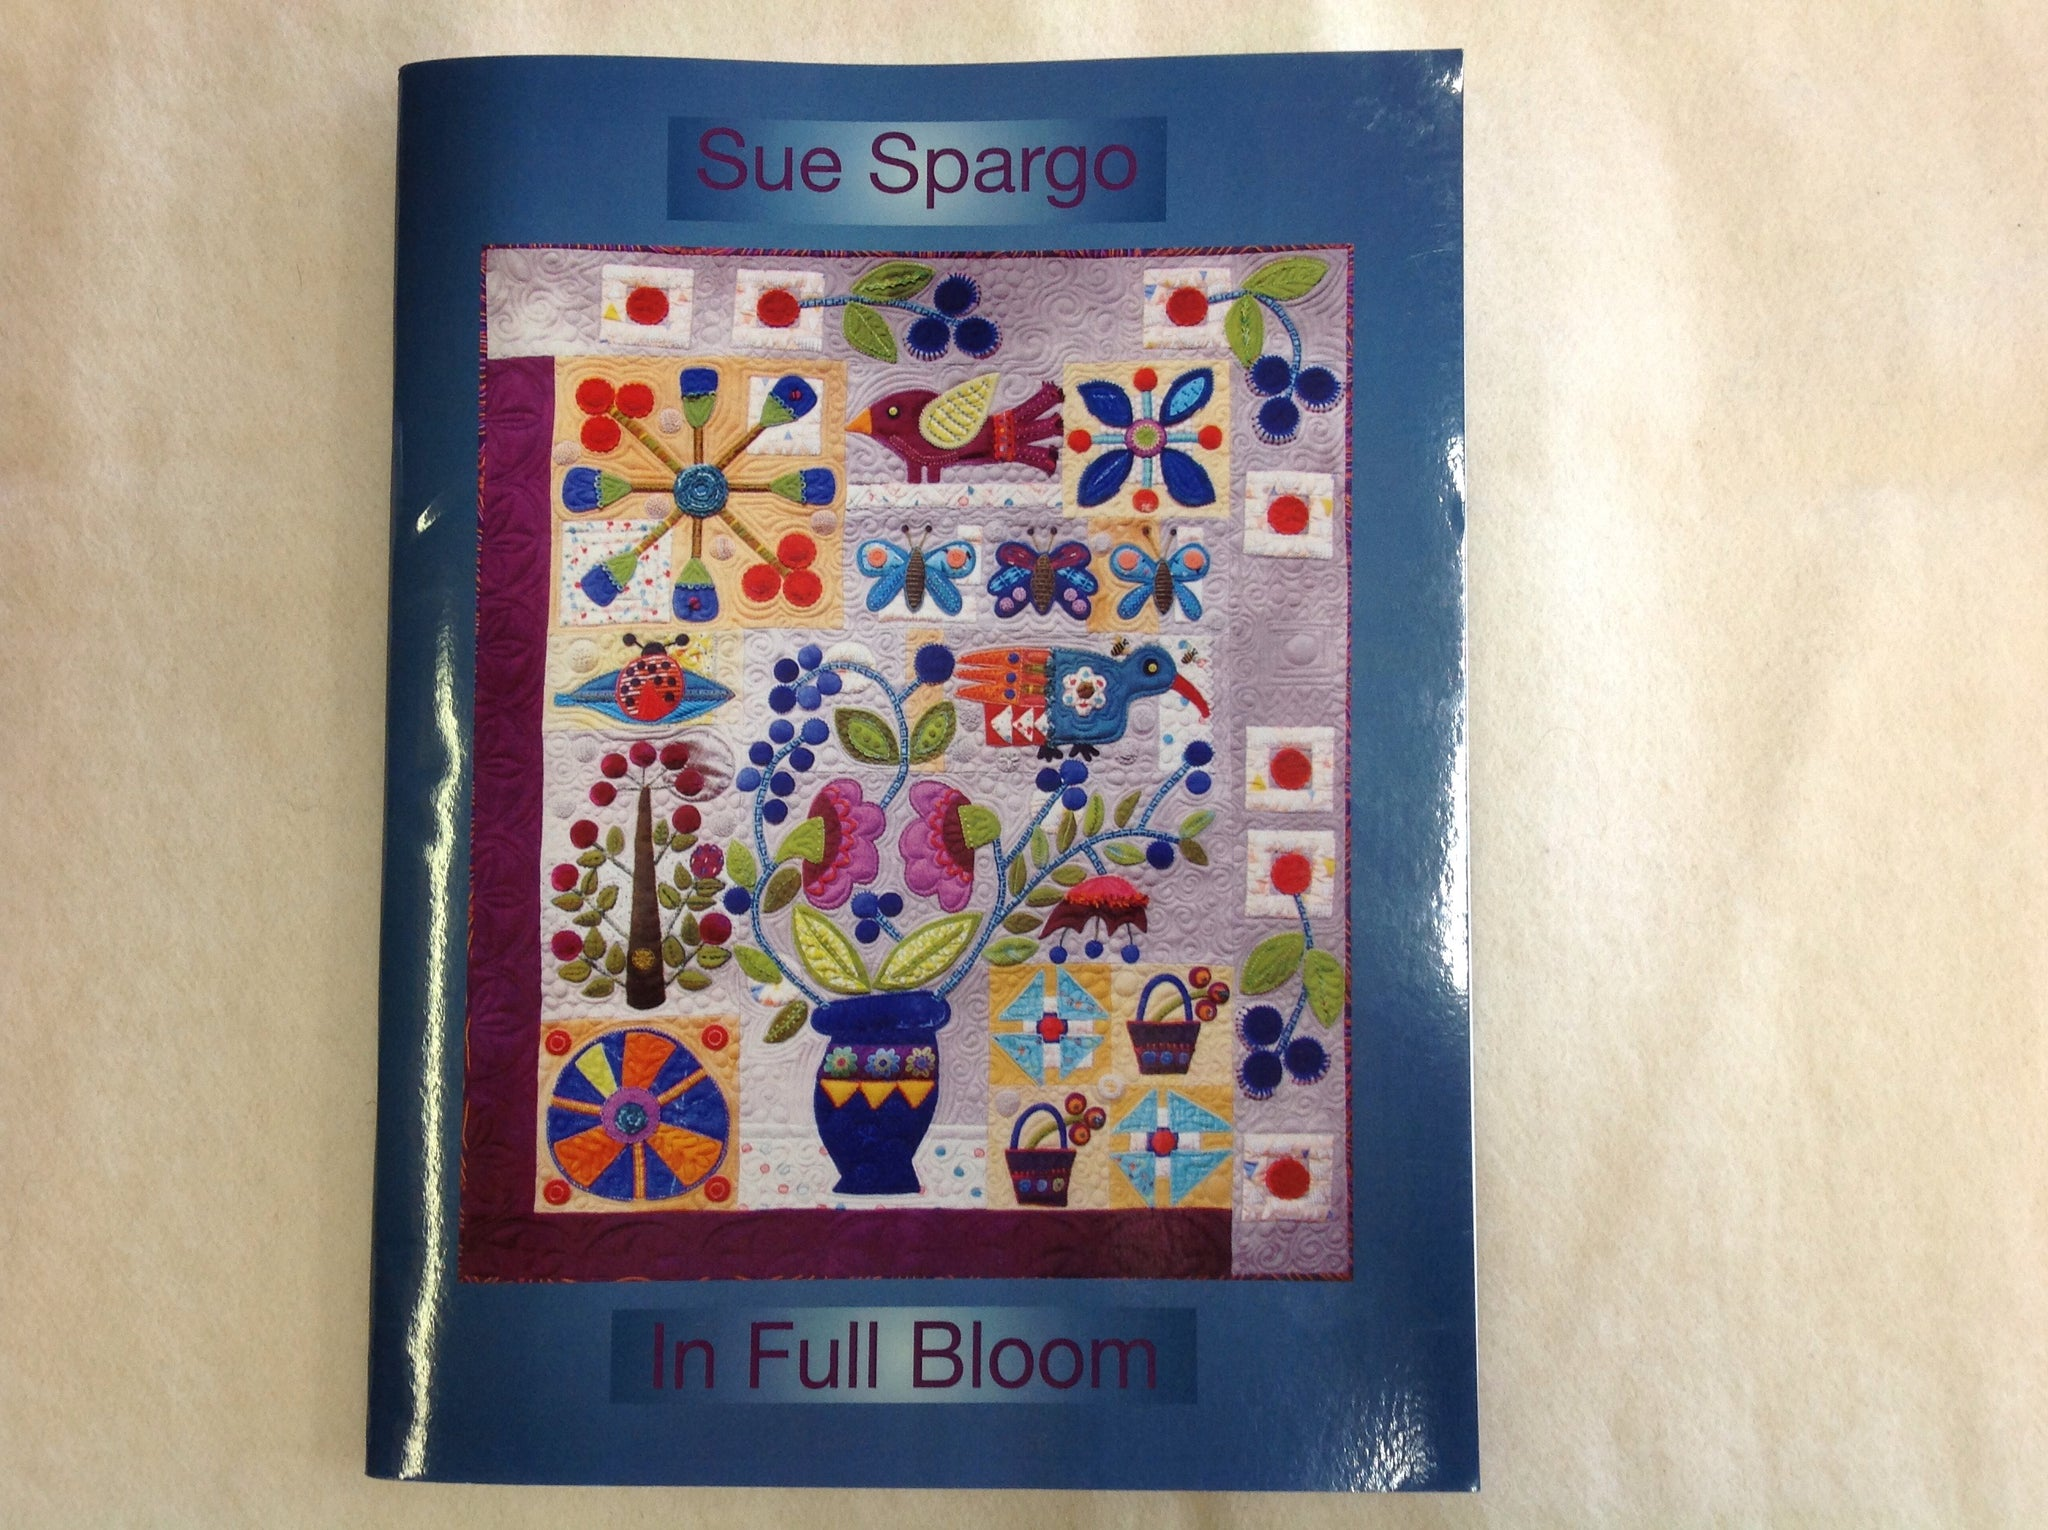 In Full Bloom Book by Sue Spargo